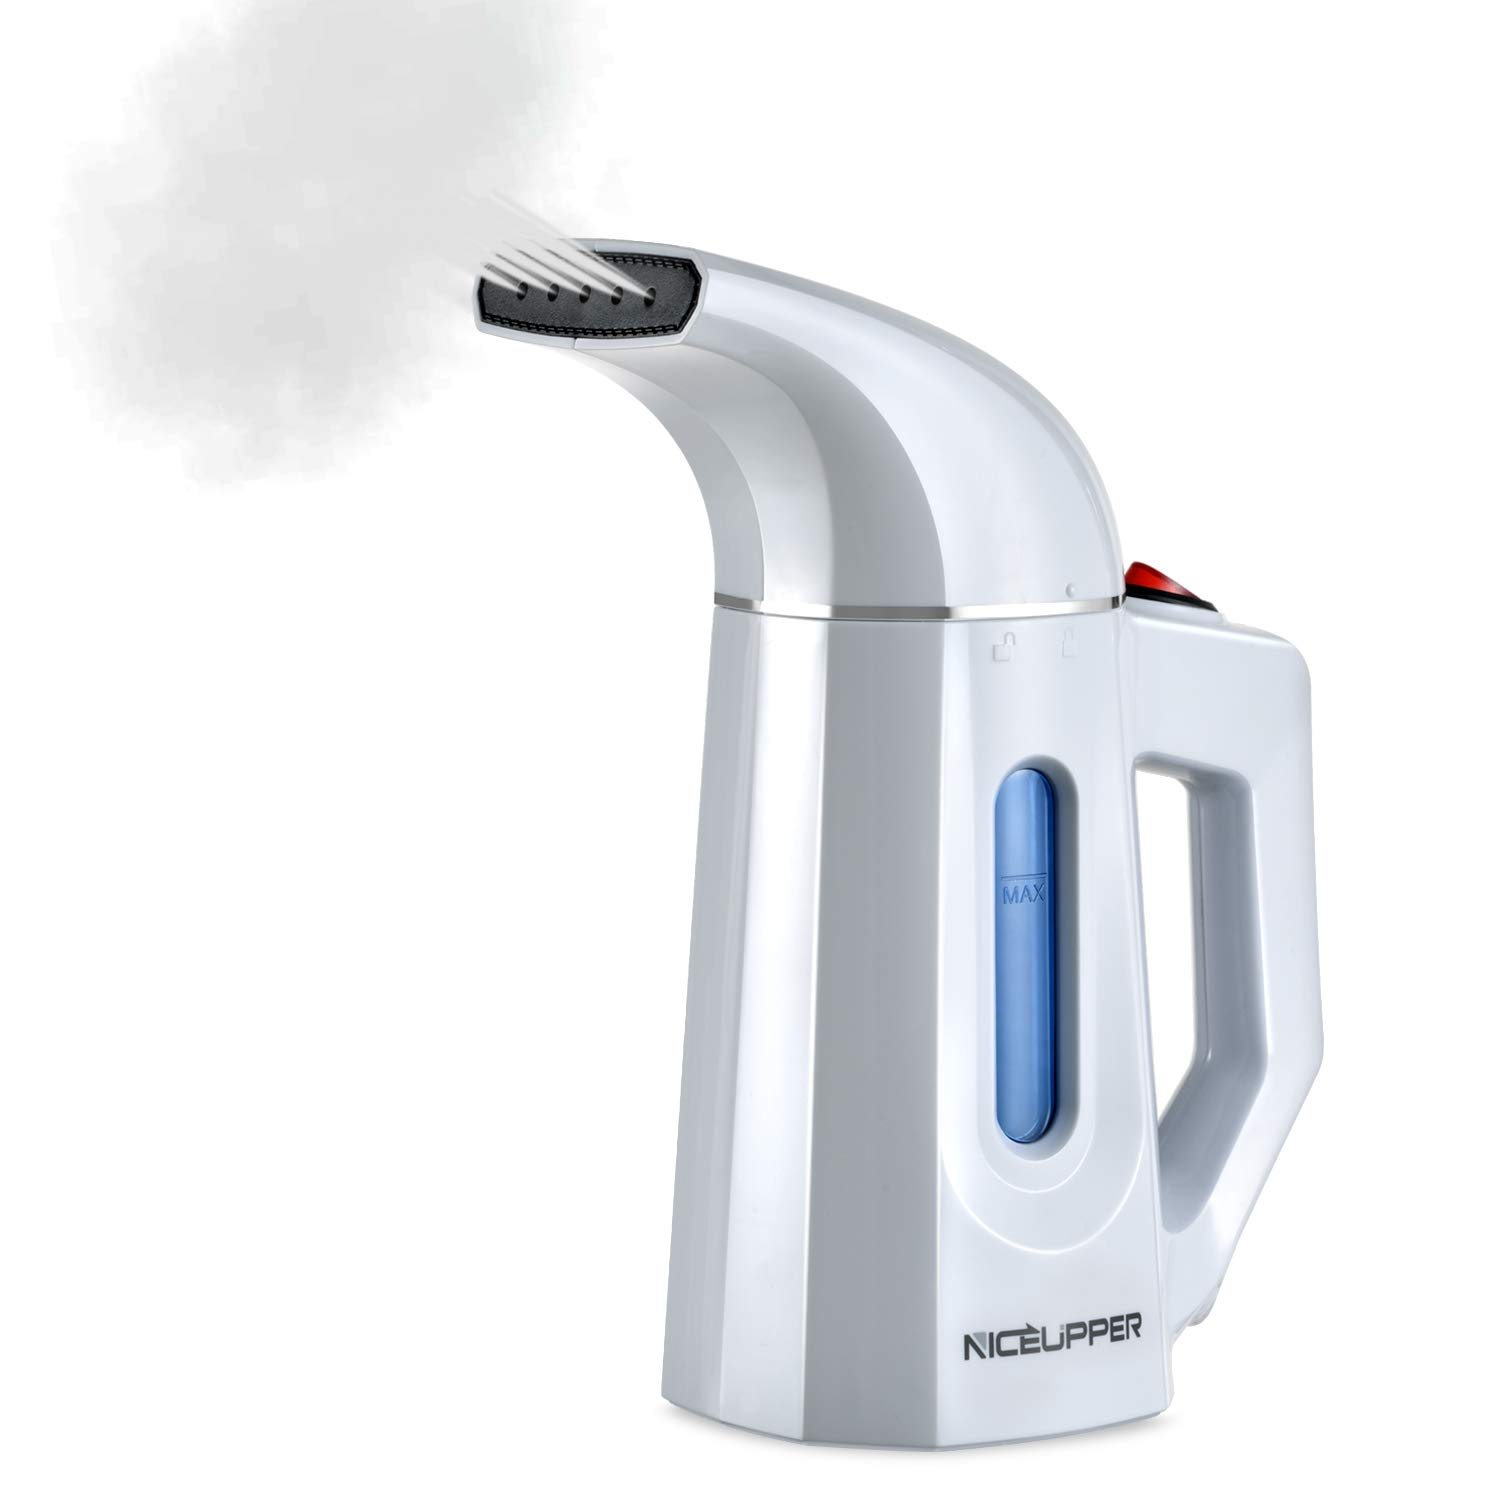 NICEUPPER Handheld Garment Steamer, 160milliliter Portable Travel Steamer for Clothes with 60 Seconds Fast Heat-Up, 10 Minutes of Continues Ironing and Automatic Shut-Off Safety Protection (White)